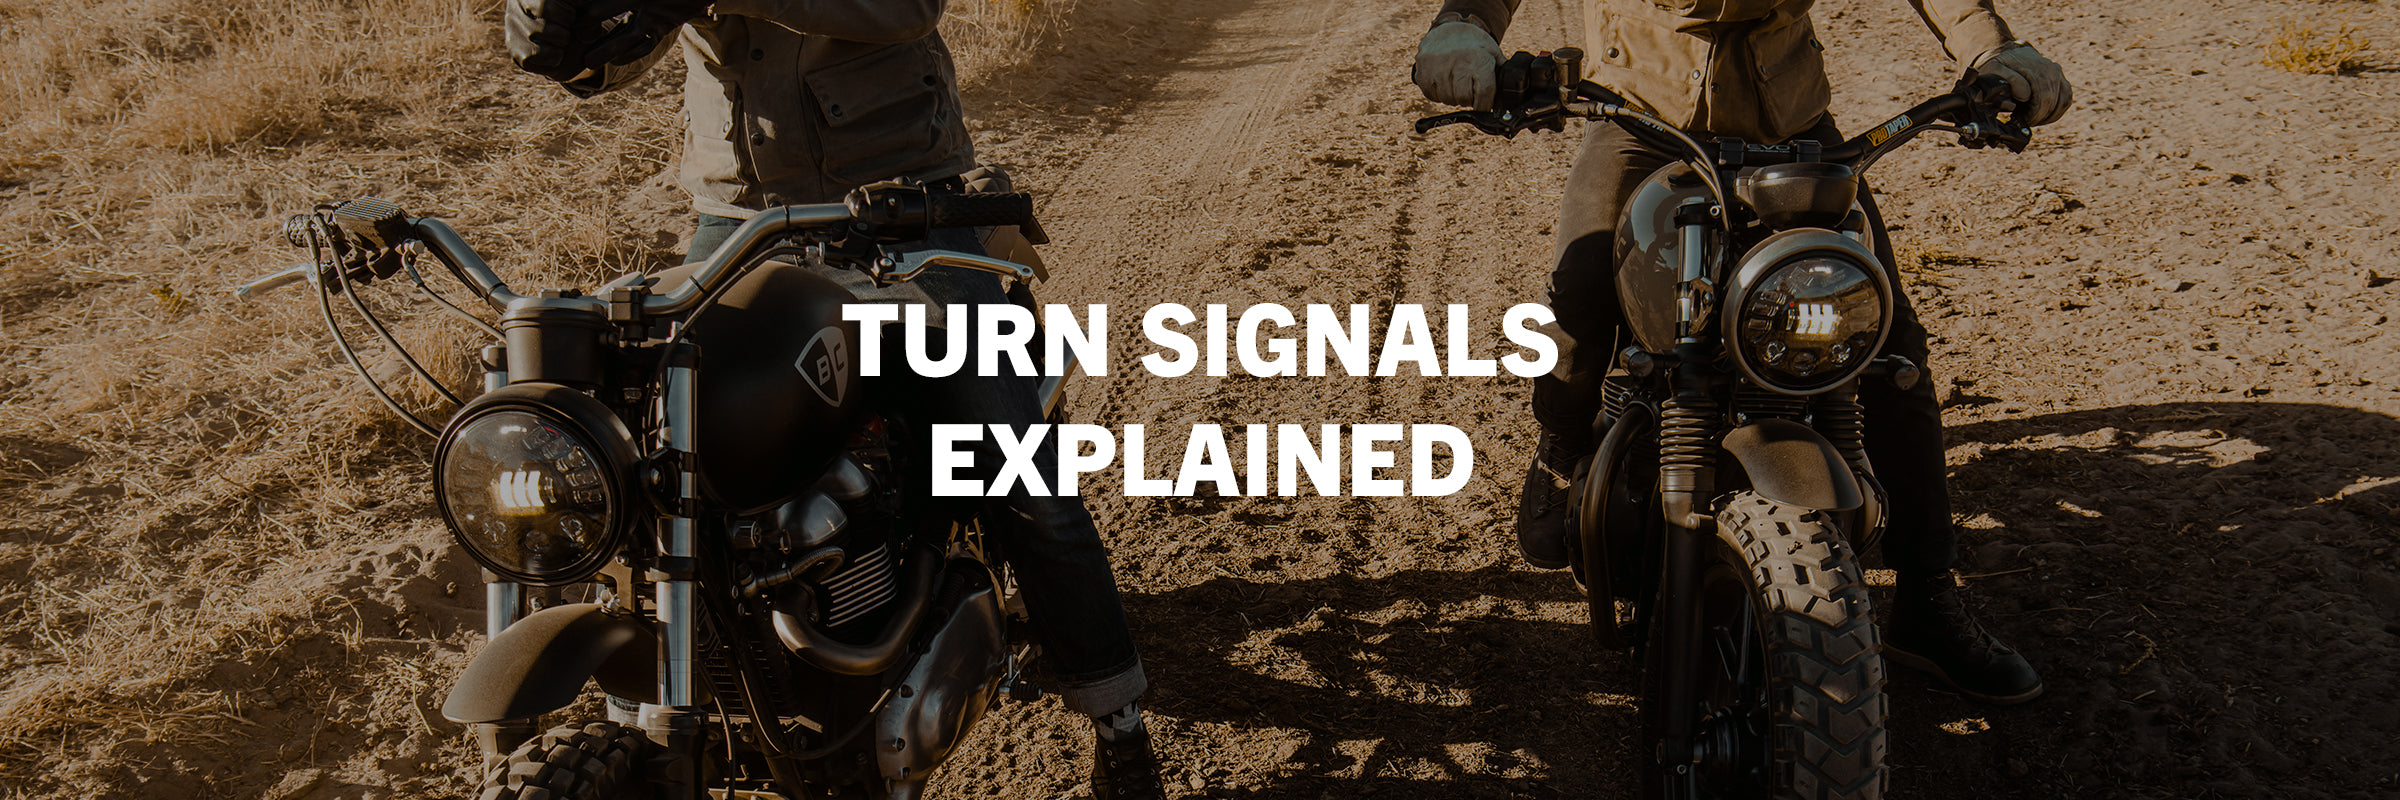 British Customs Turn Signals for Triumph Motorcycles